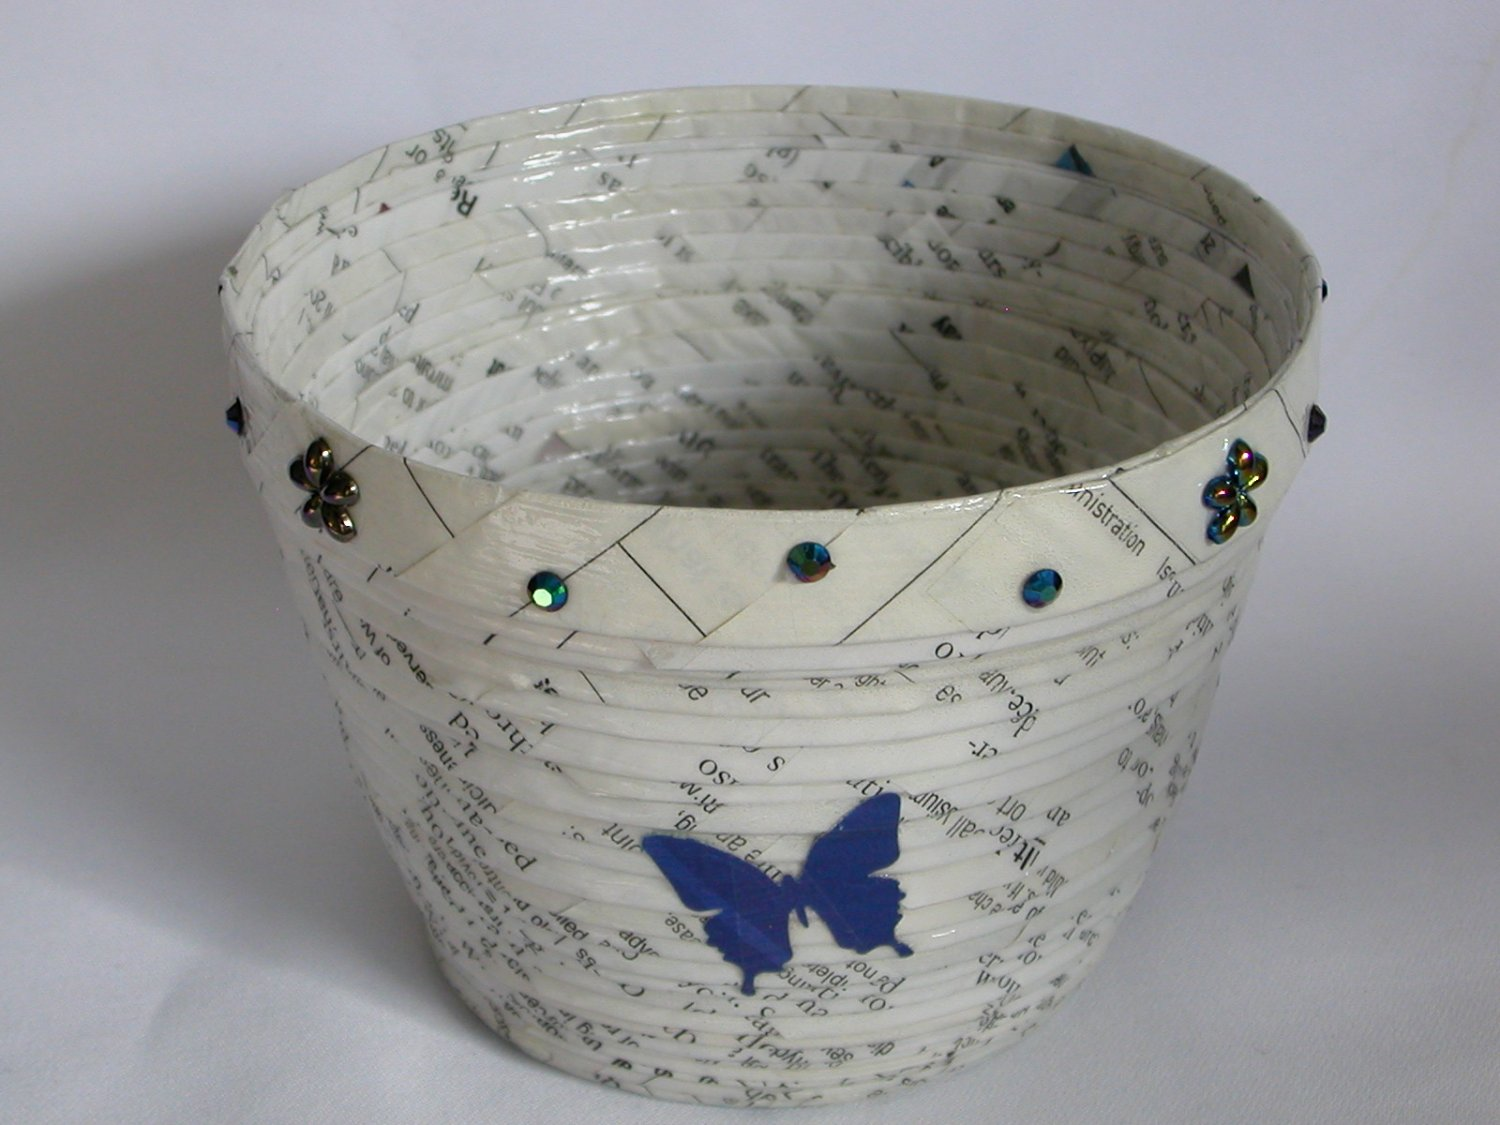 Recycled magazine bowl white and black print purple butterfly 3.25x4.25